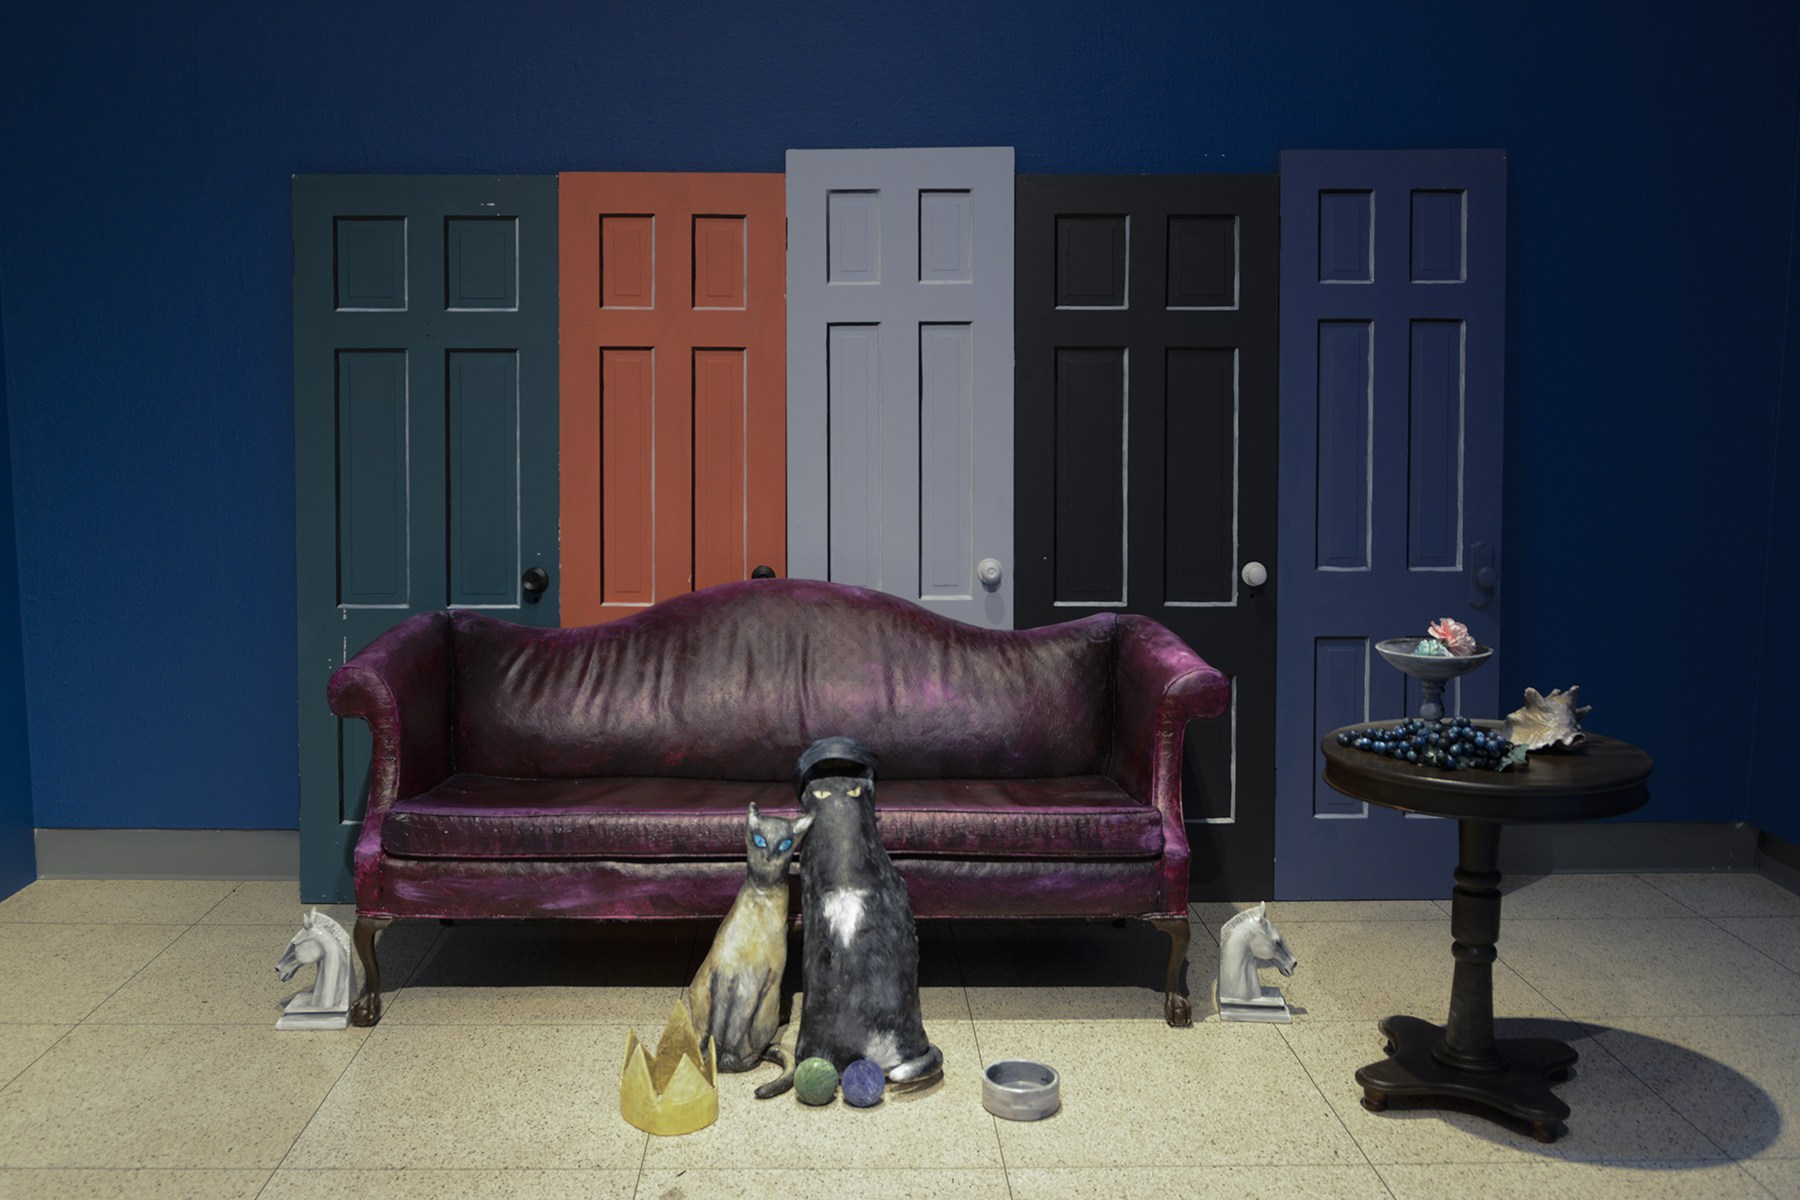 The installation by Donna Castellanos has two cats to be posed, a couch and the doors, just as they can be seen in Abercrombie's paintings. Visitors come through to take their own pictures inside the installation as if they are within one of Abercrombie's paintings. Image courtesy of the Illinois State Museum.